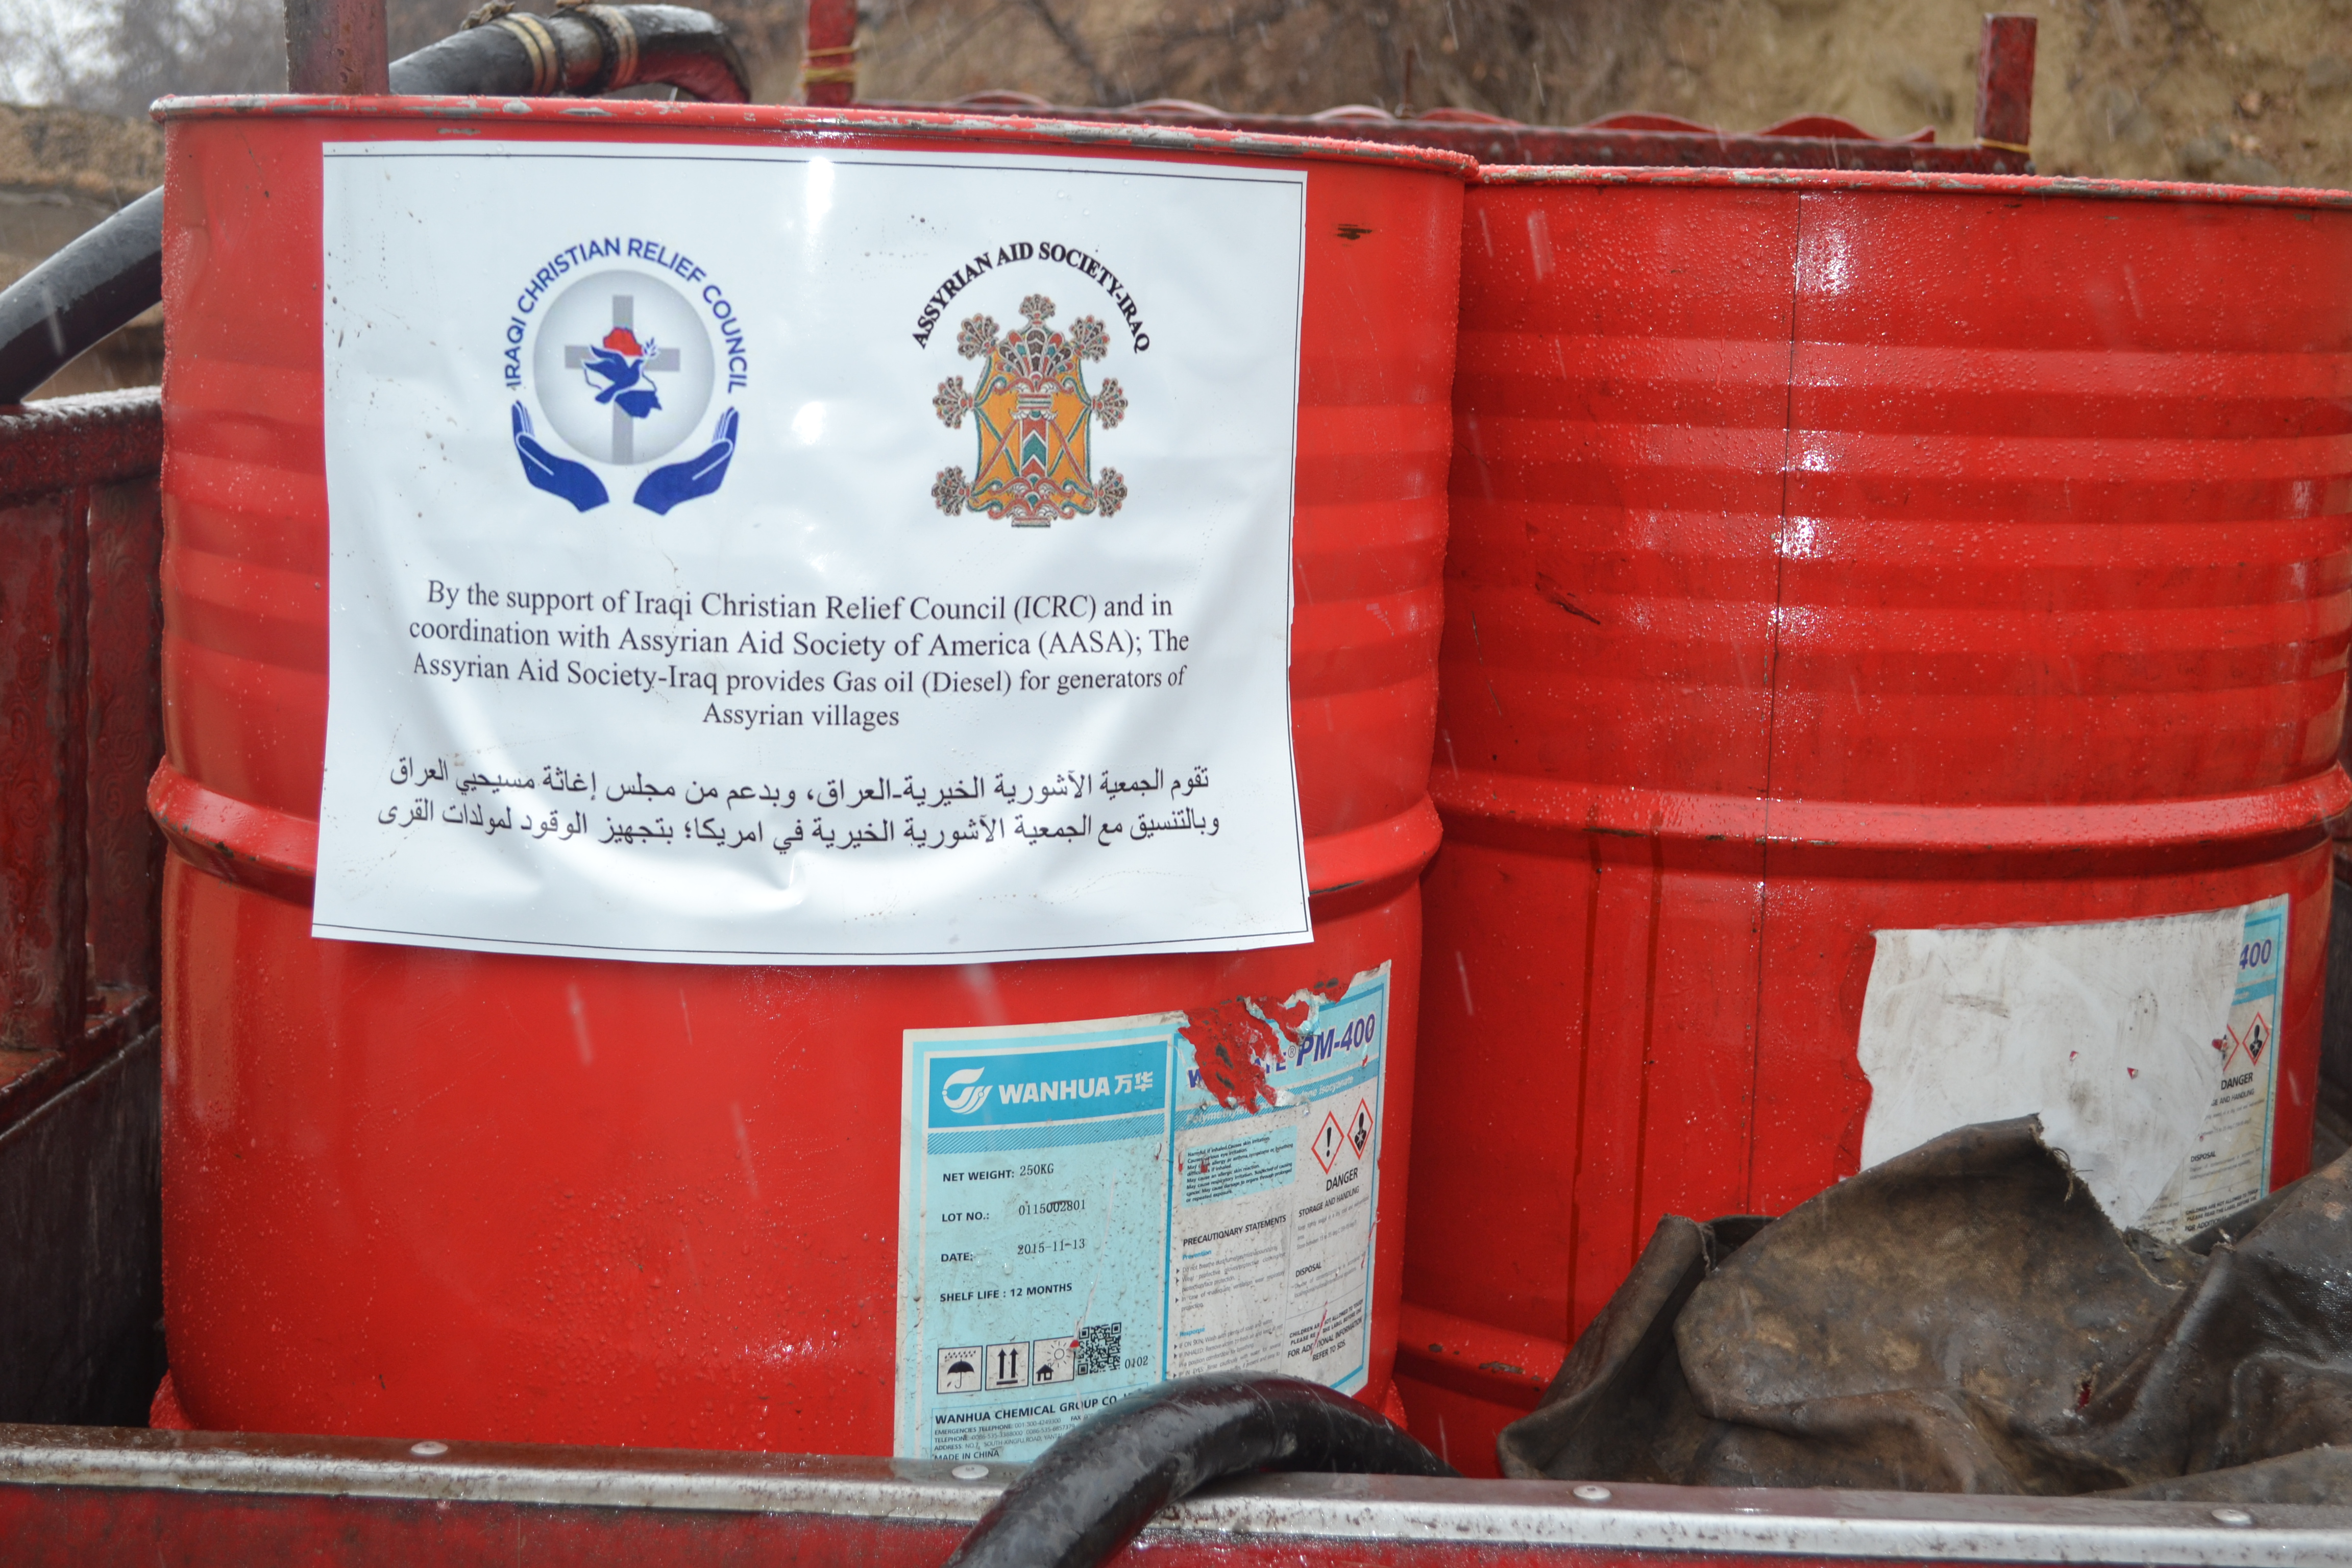 AAS Iraq supplies Gas Oil Diesel for generators of our people s